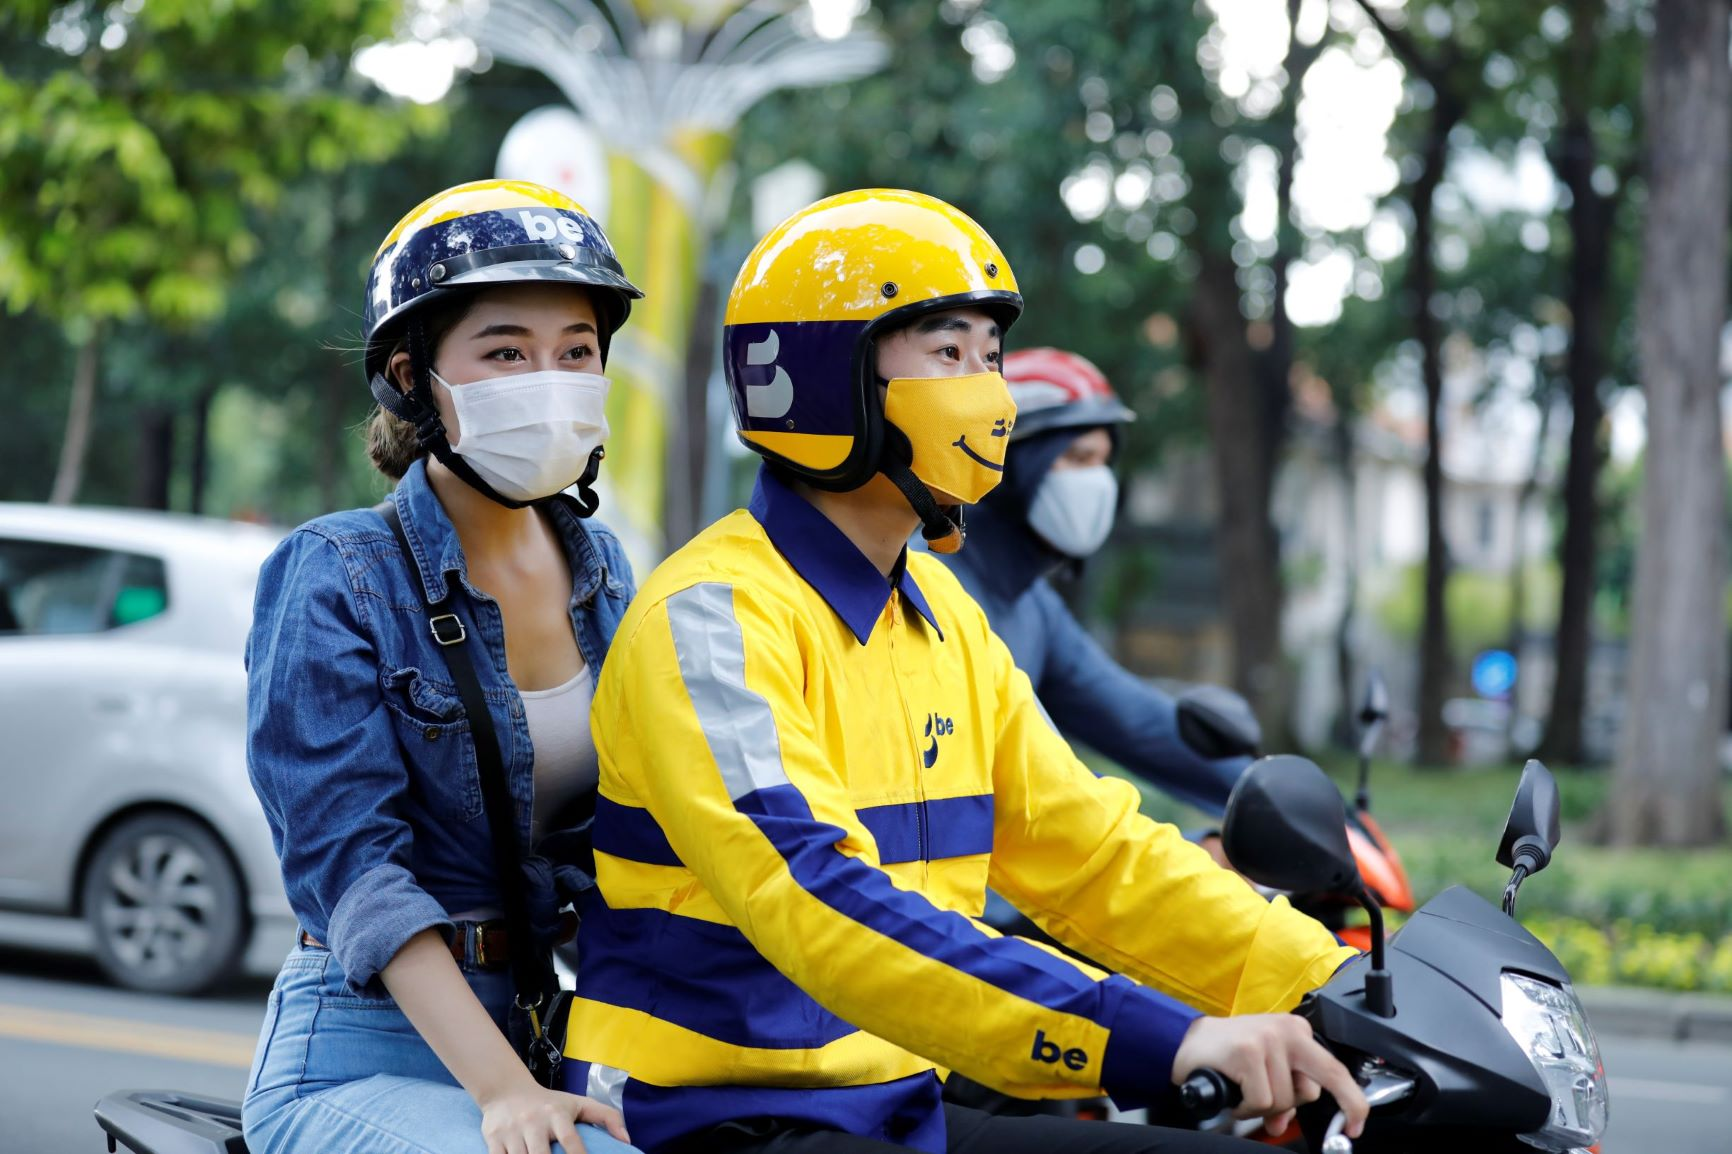 Be app offers discounts on motorbike ride and delivery services in Ho Chi Minh City, cheaper than Grab - VnReview